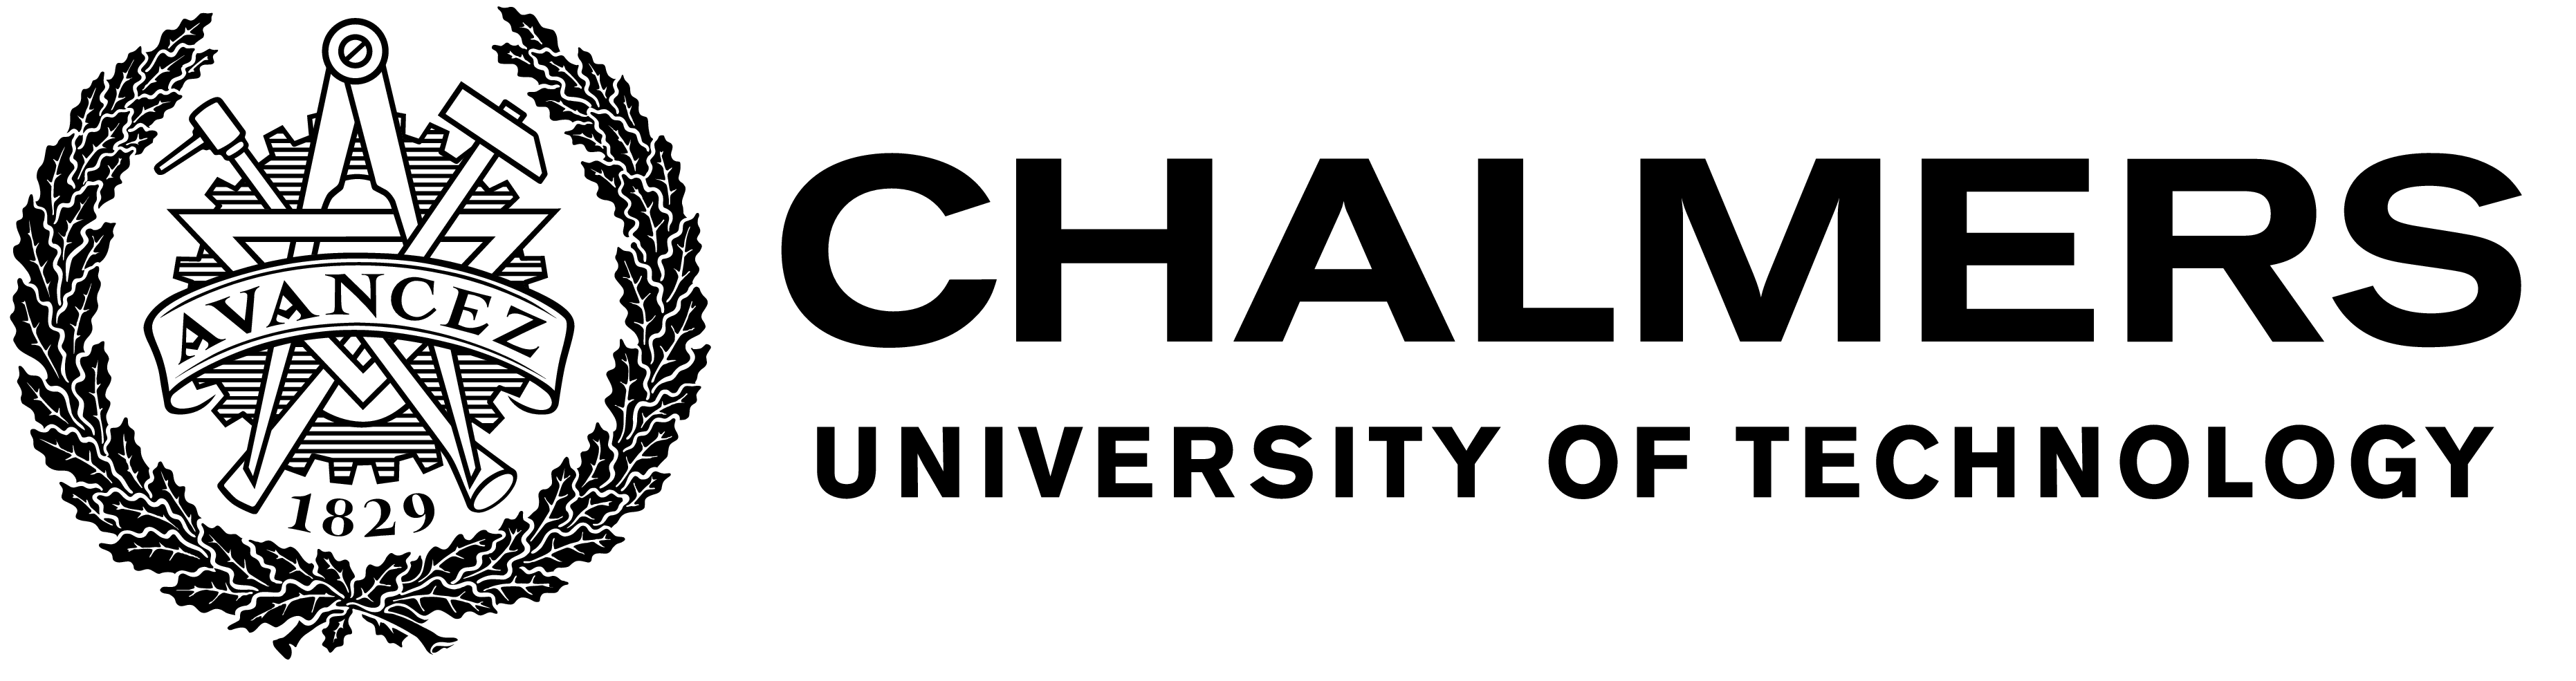 Frontiers and the Chalmers University of Technology form